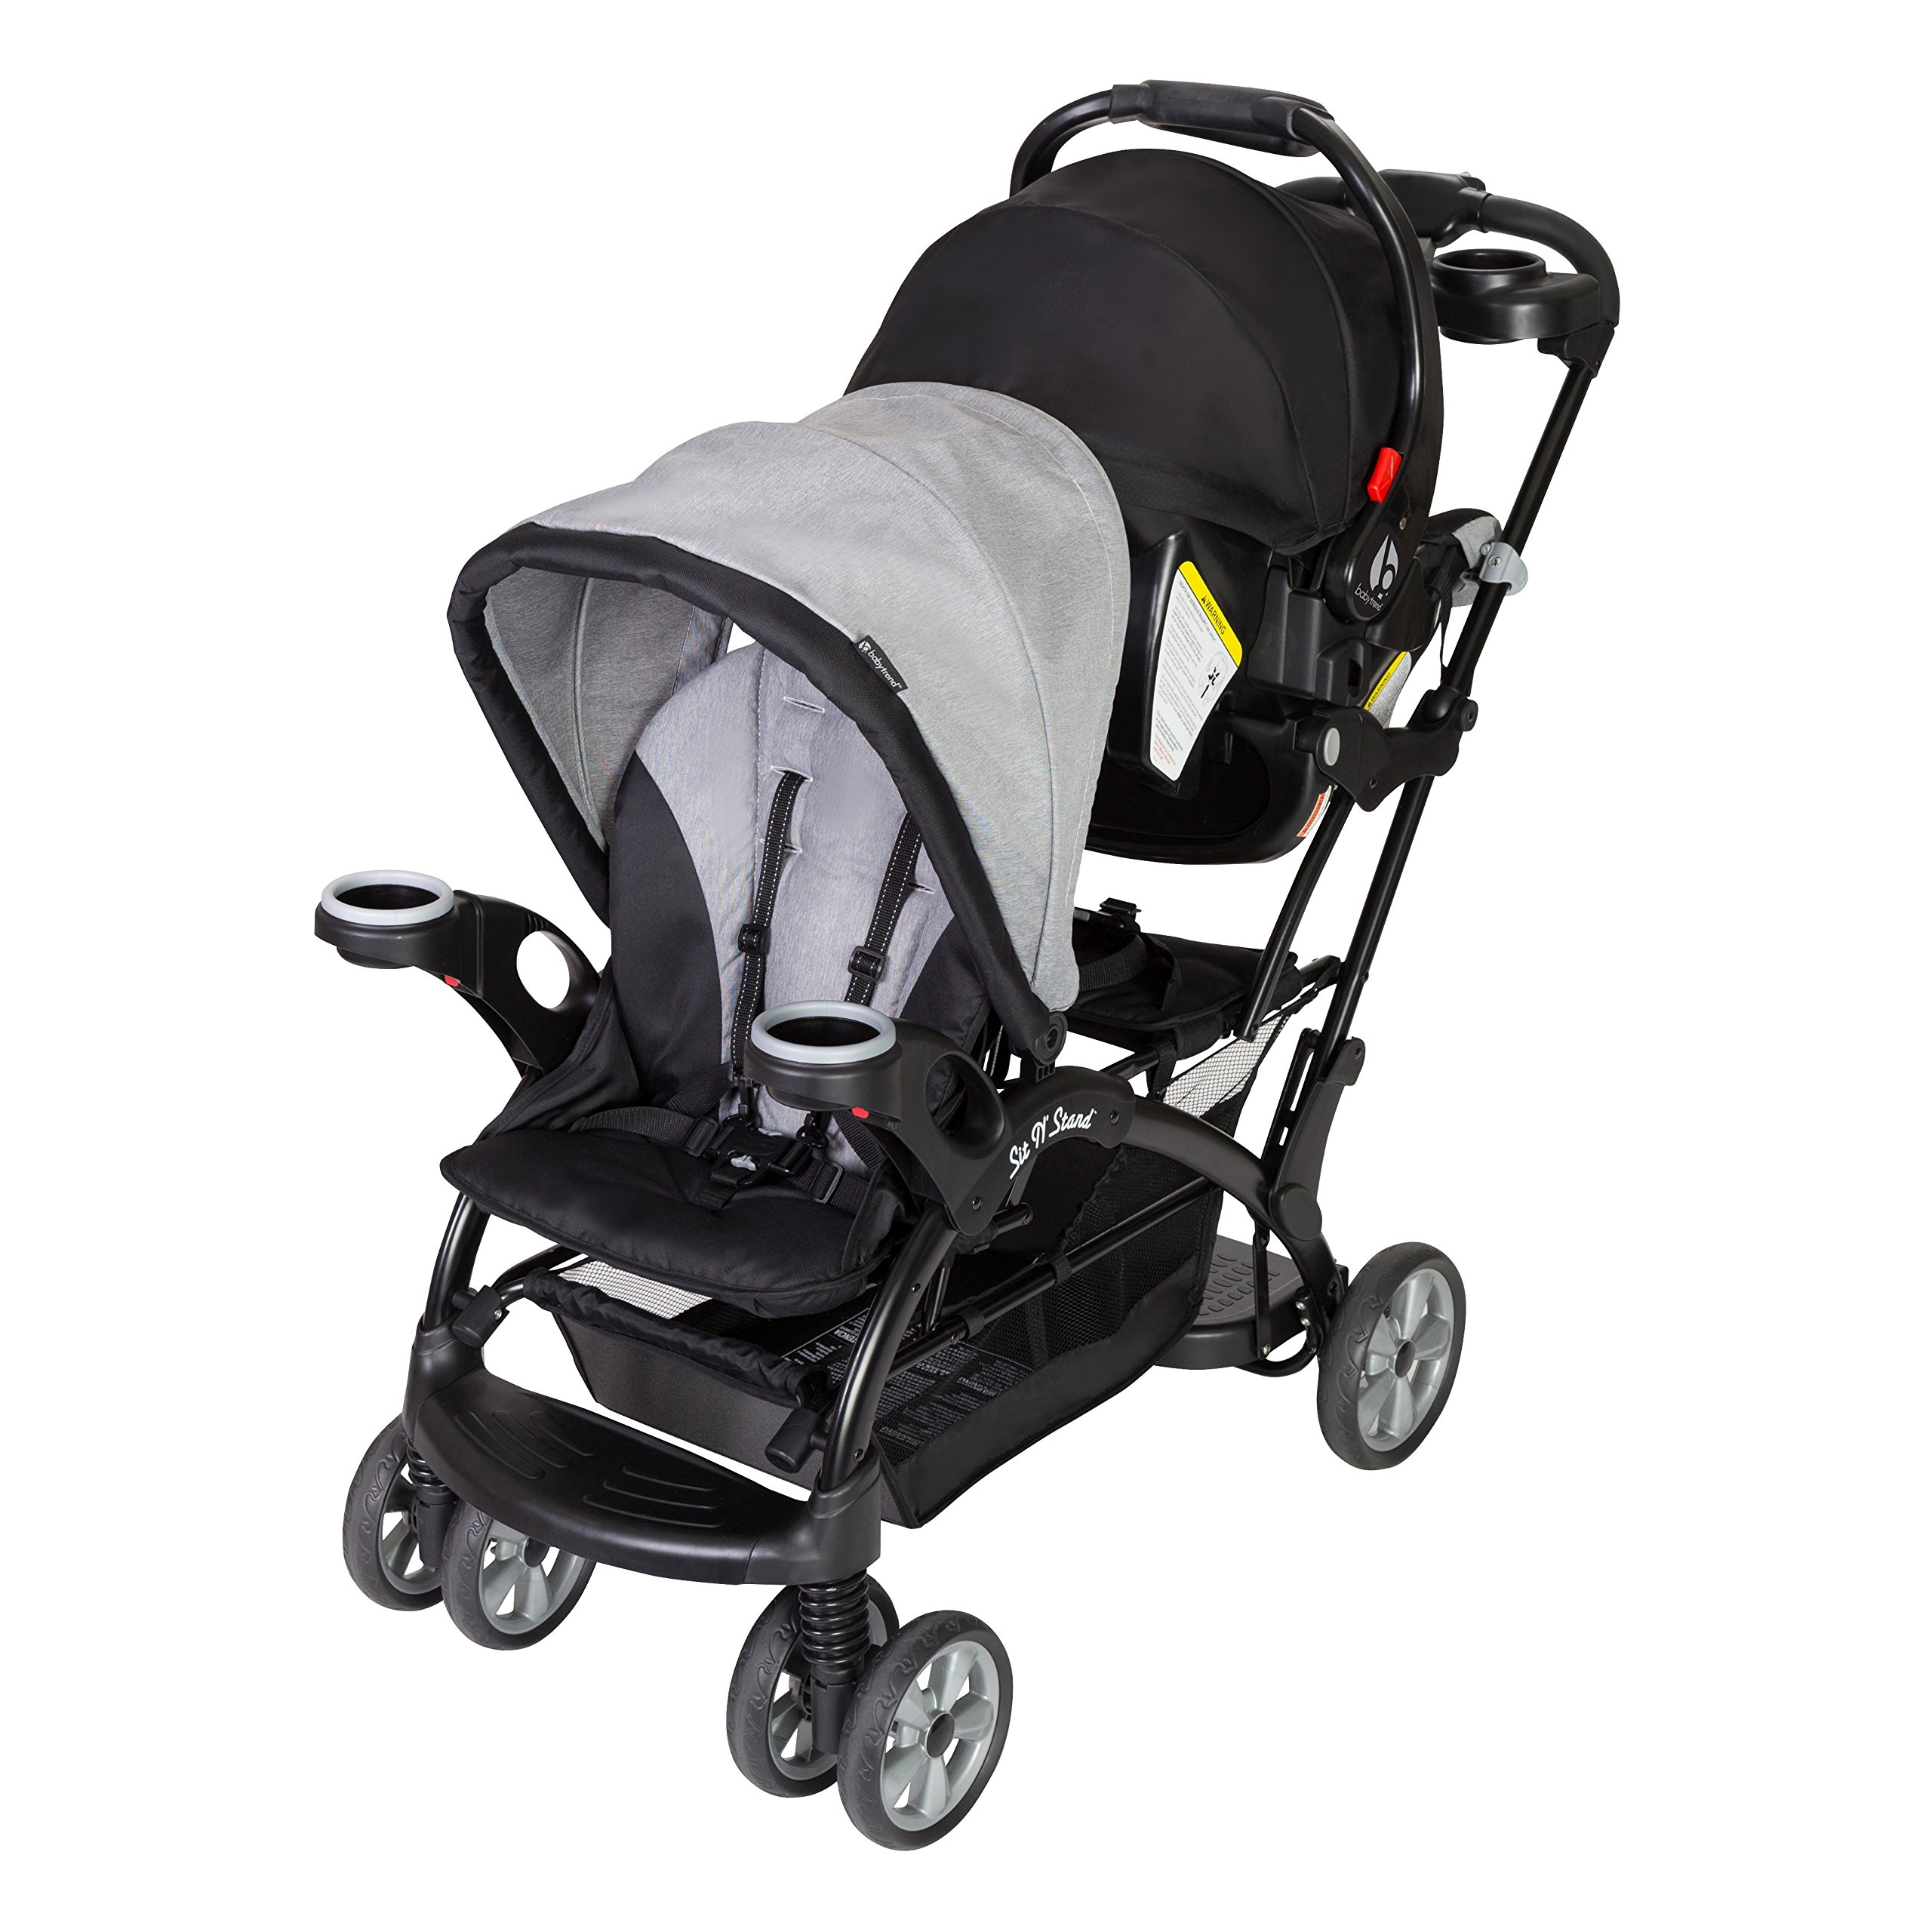 Baby Trend Sit n Stand Ultra Stroller, Morning Mist by Baby Trend